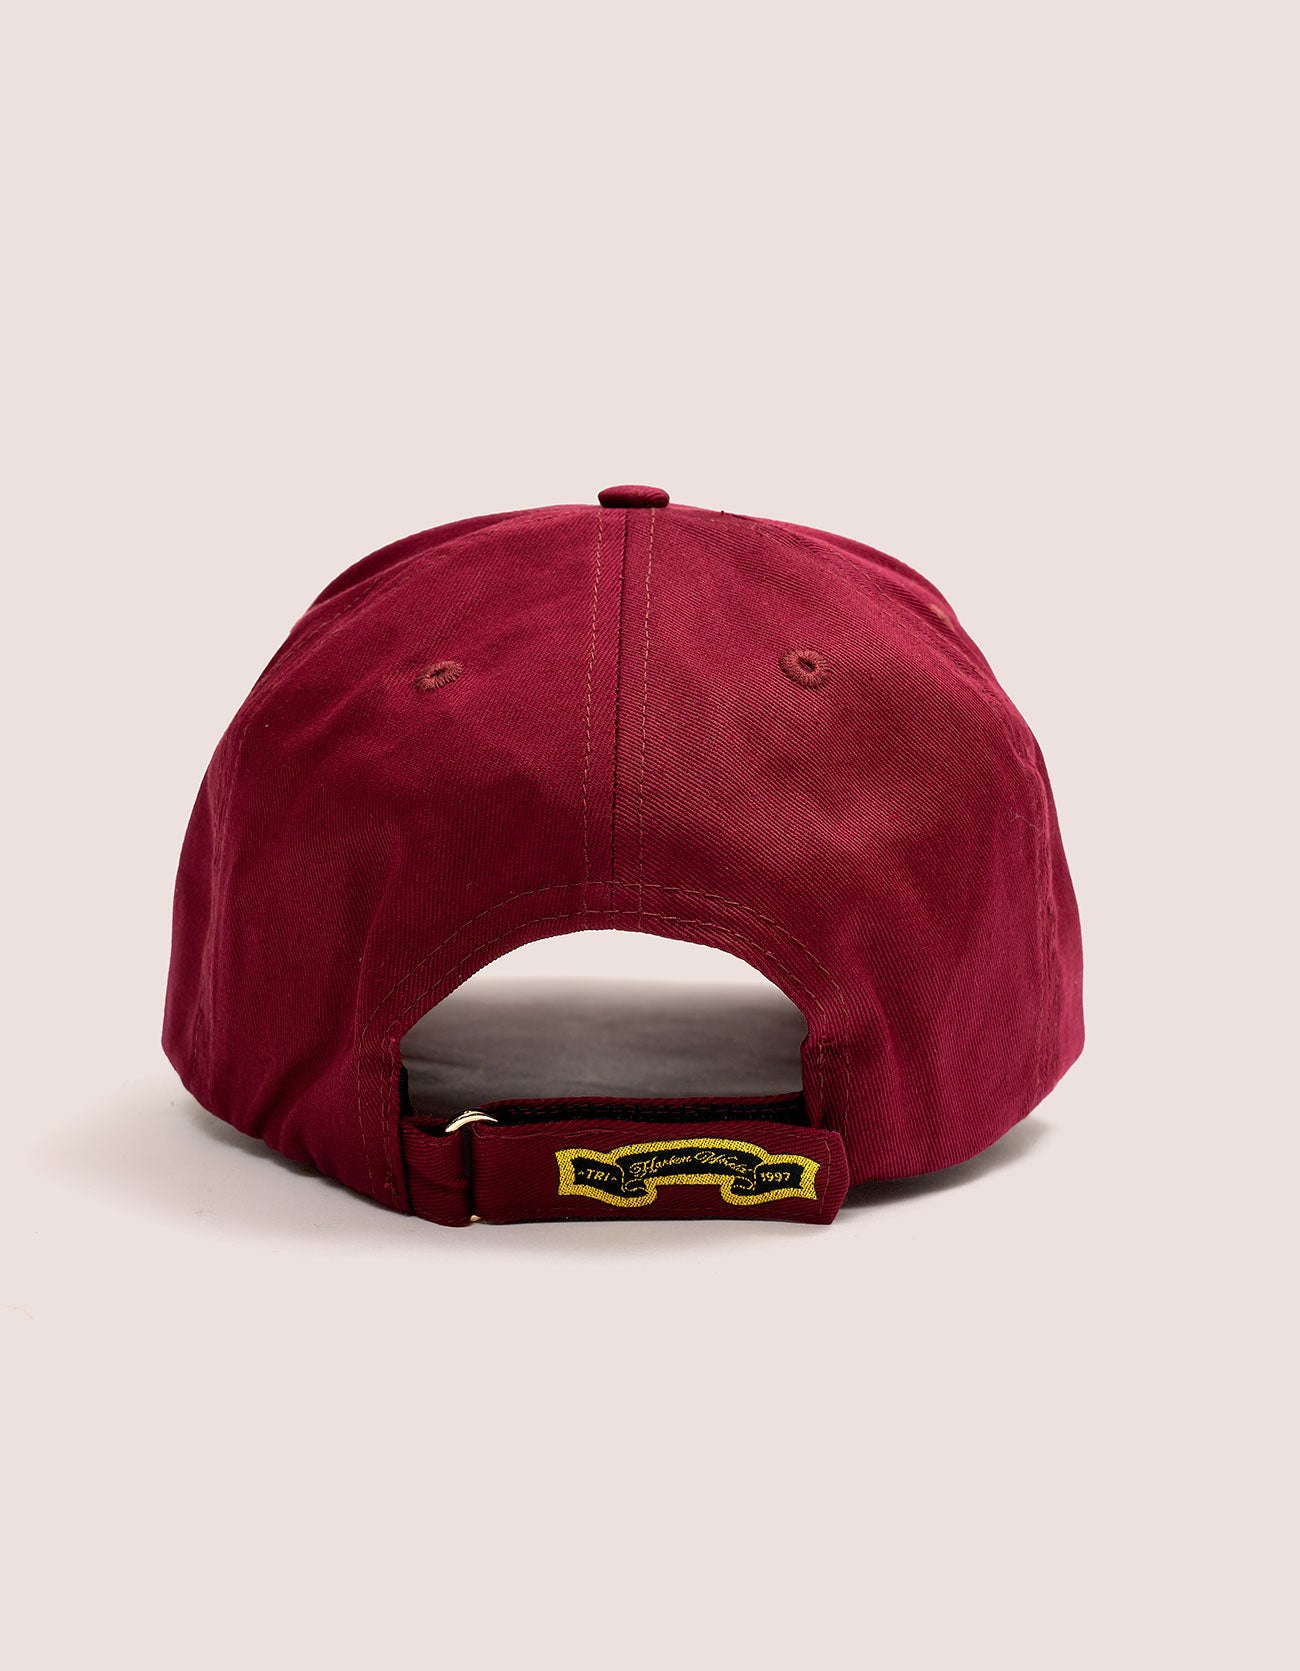 DIPSET COUTURE COTTON ROCKSTAR HAT BURGUNDY